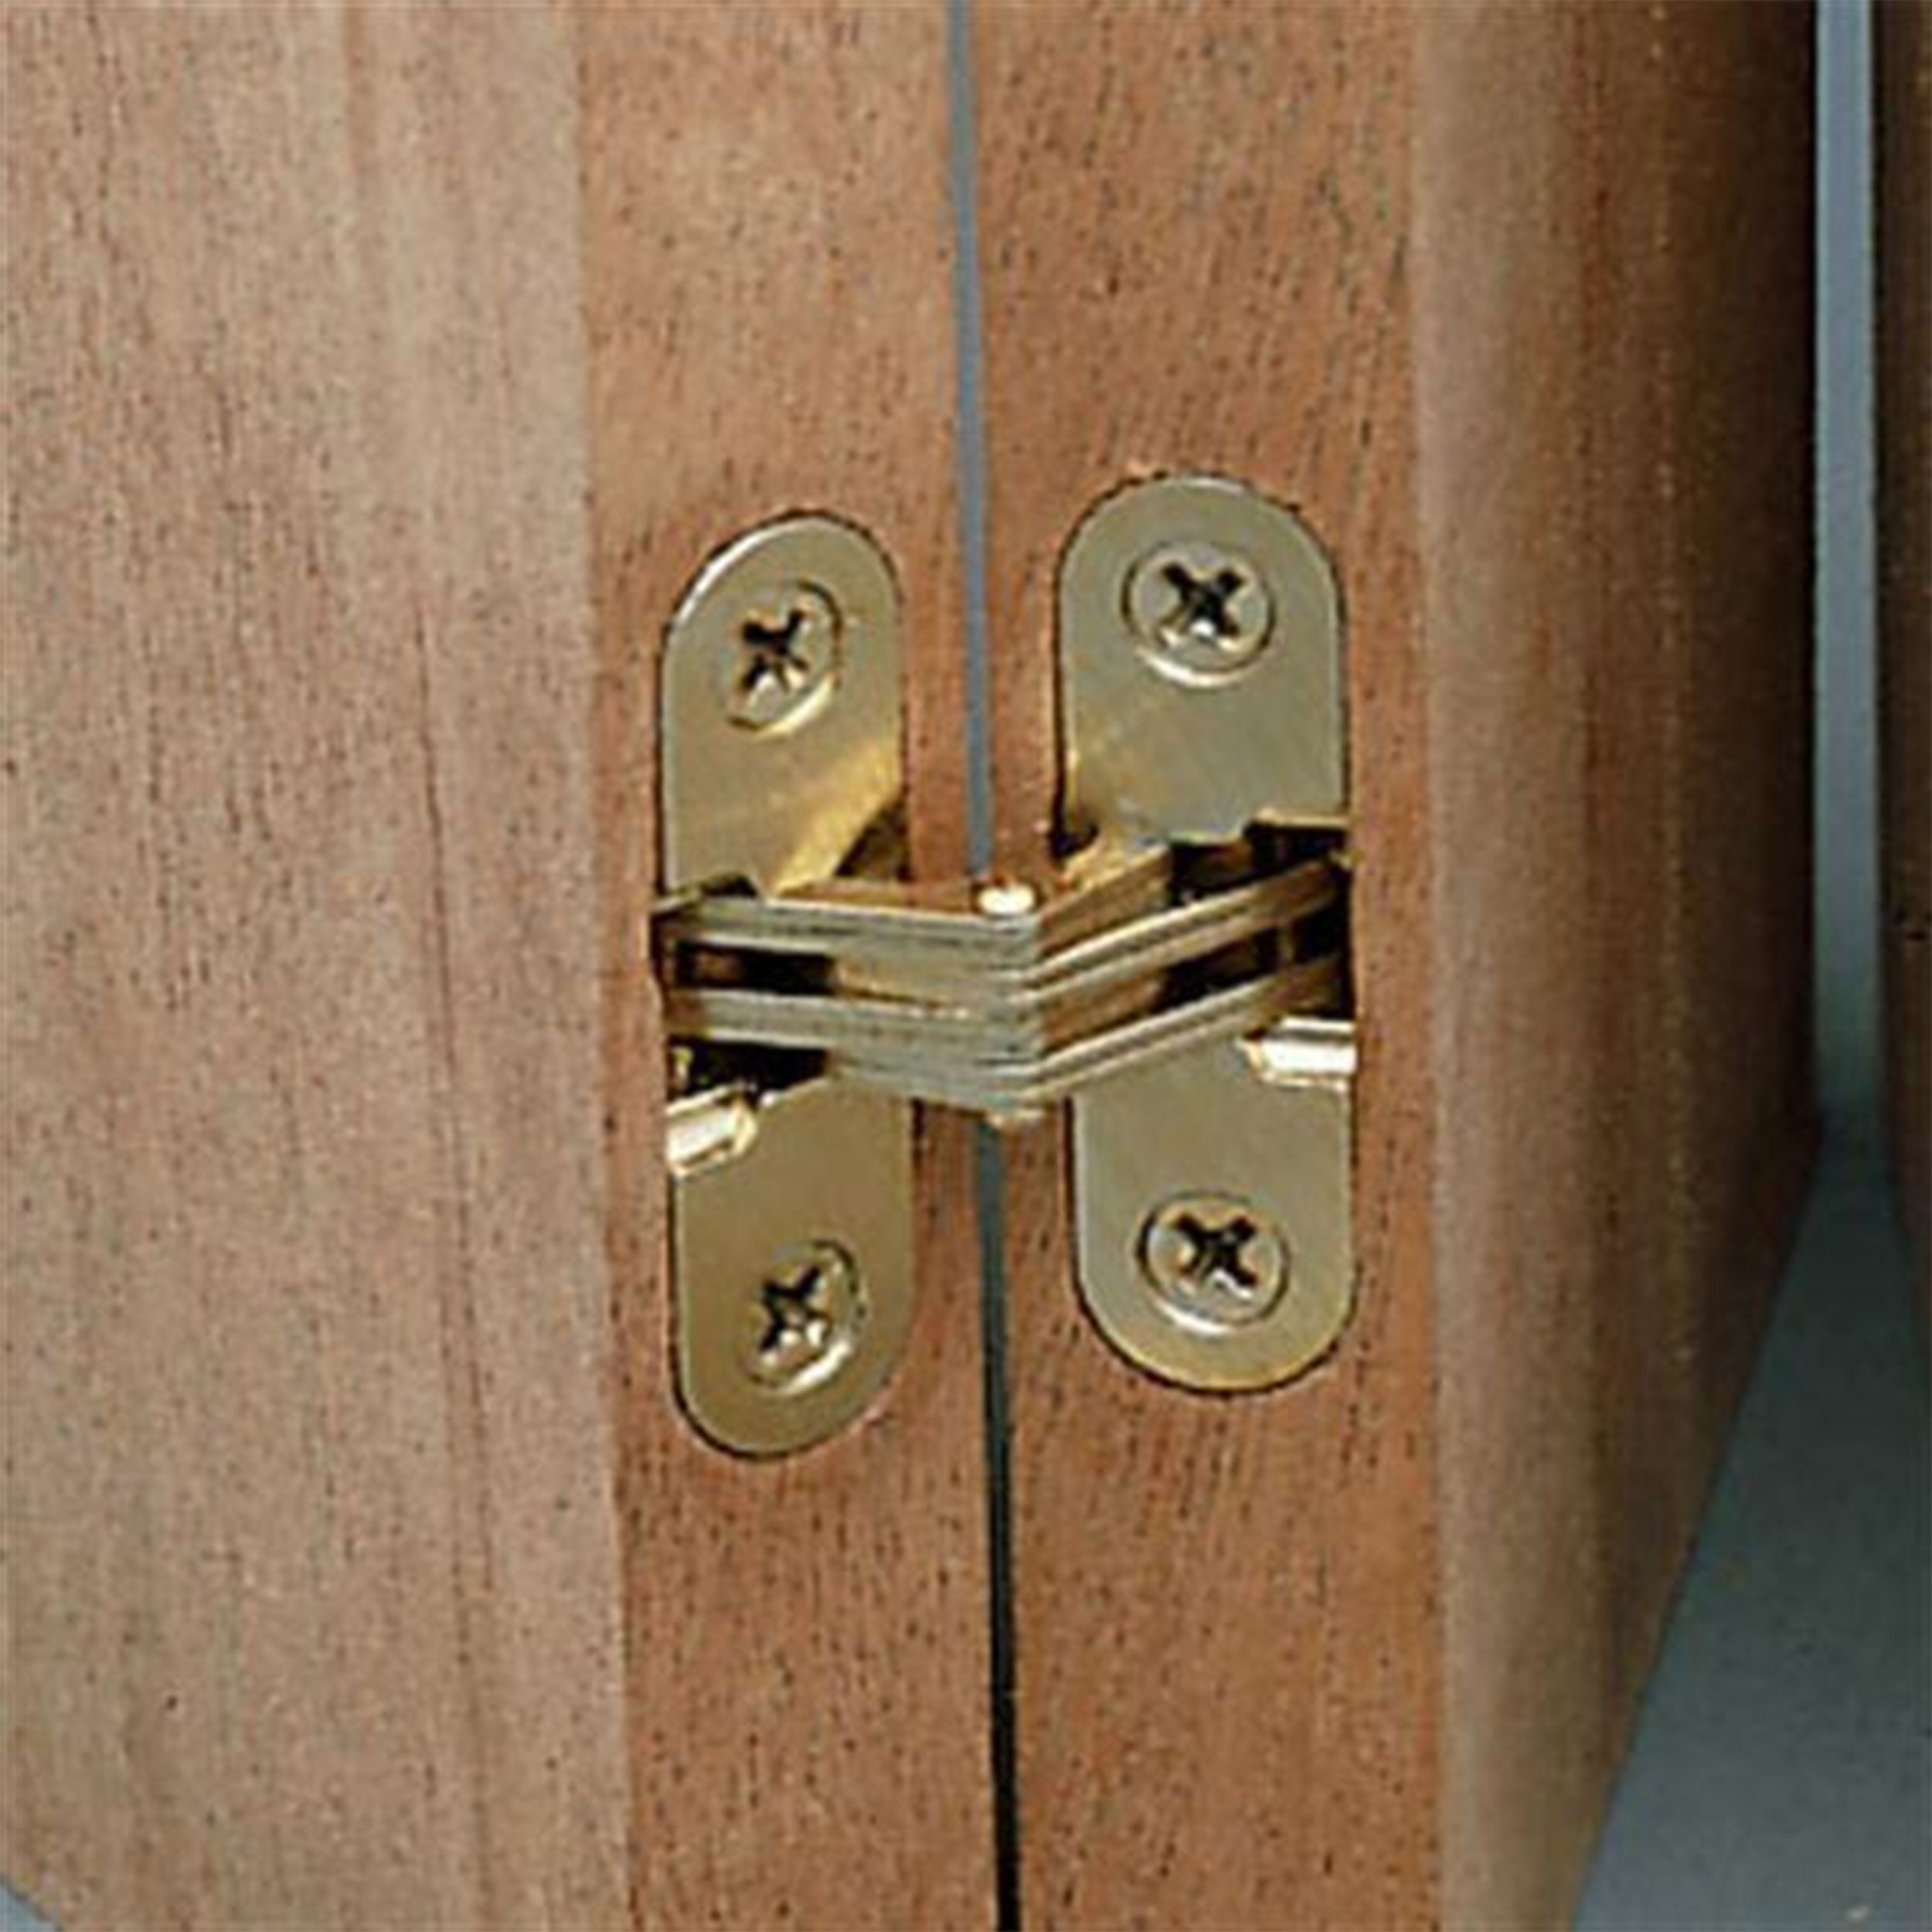 Soss Invisible Hinge 3 8 X 1 11 16 Invisible Hinges Hinges For Cabinets Offset Hinges